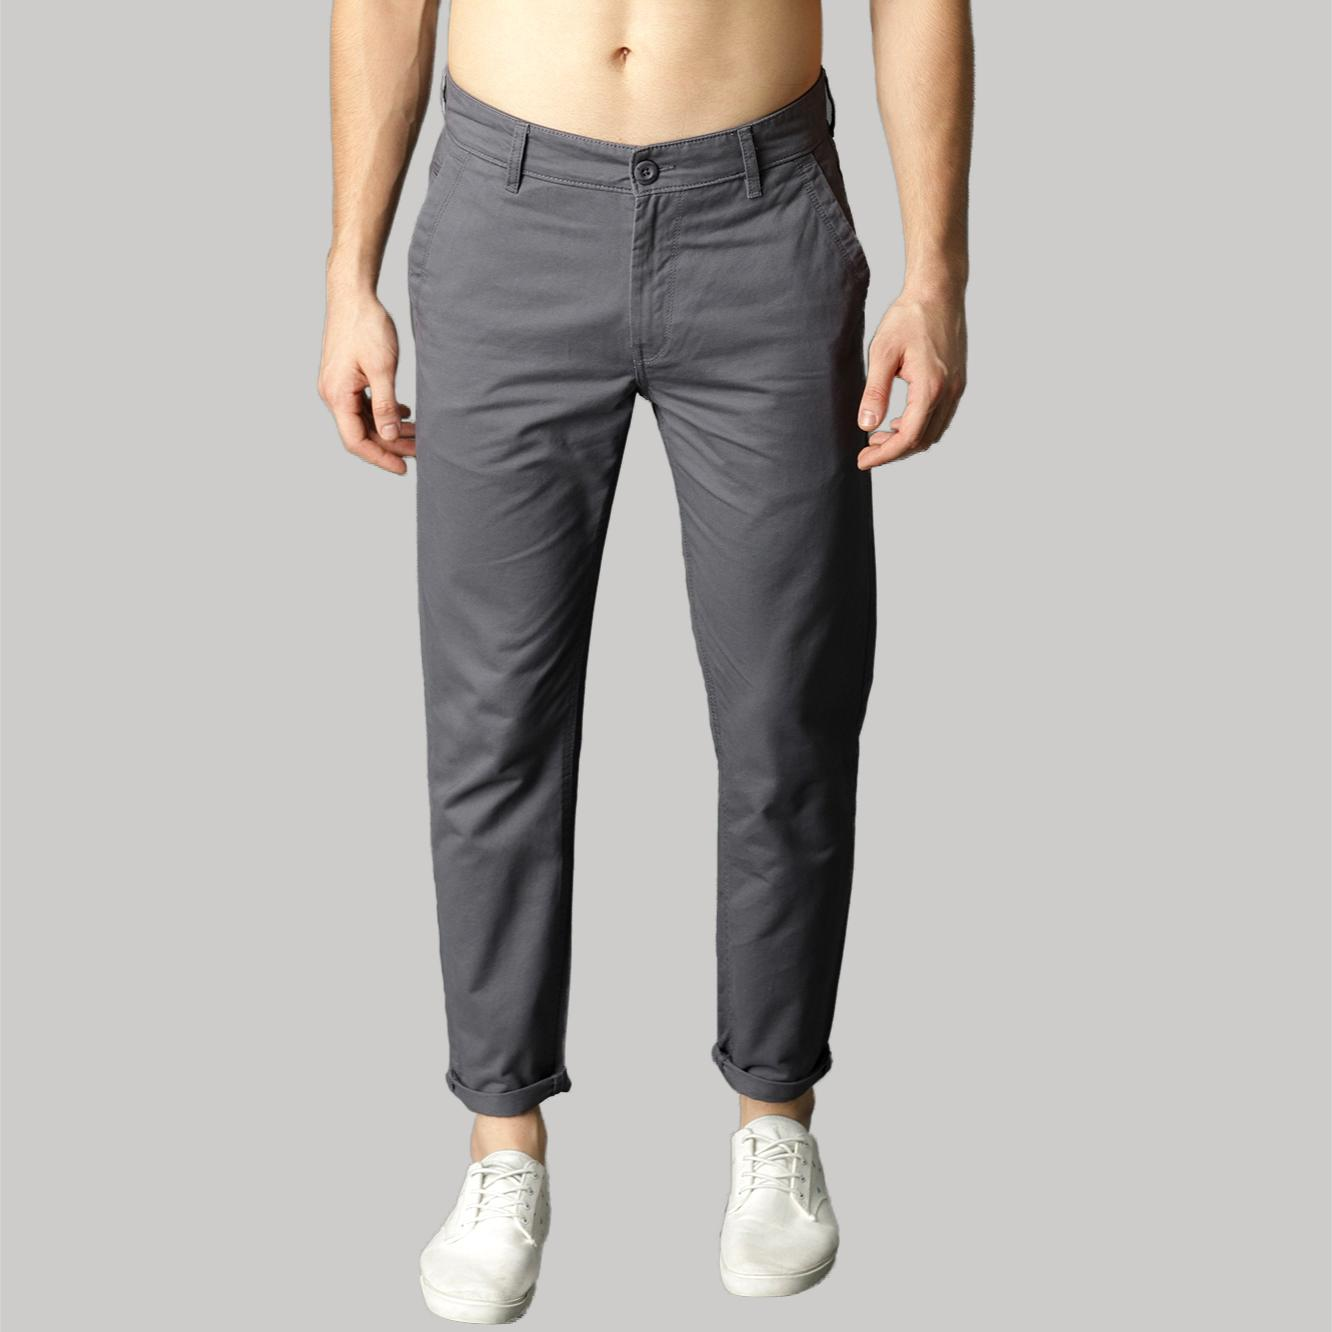 9928b2a276 Buy Men's Pants Online At Best Price From Daraz.com.np